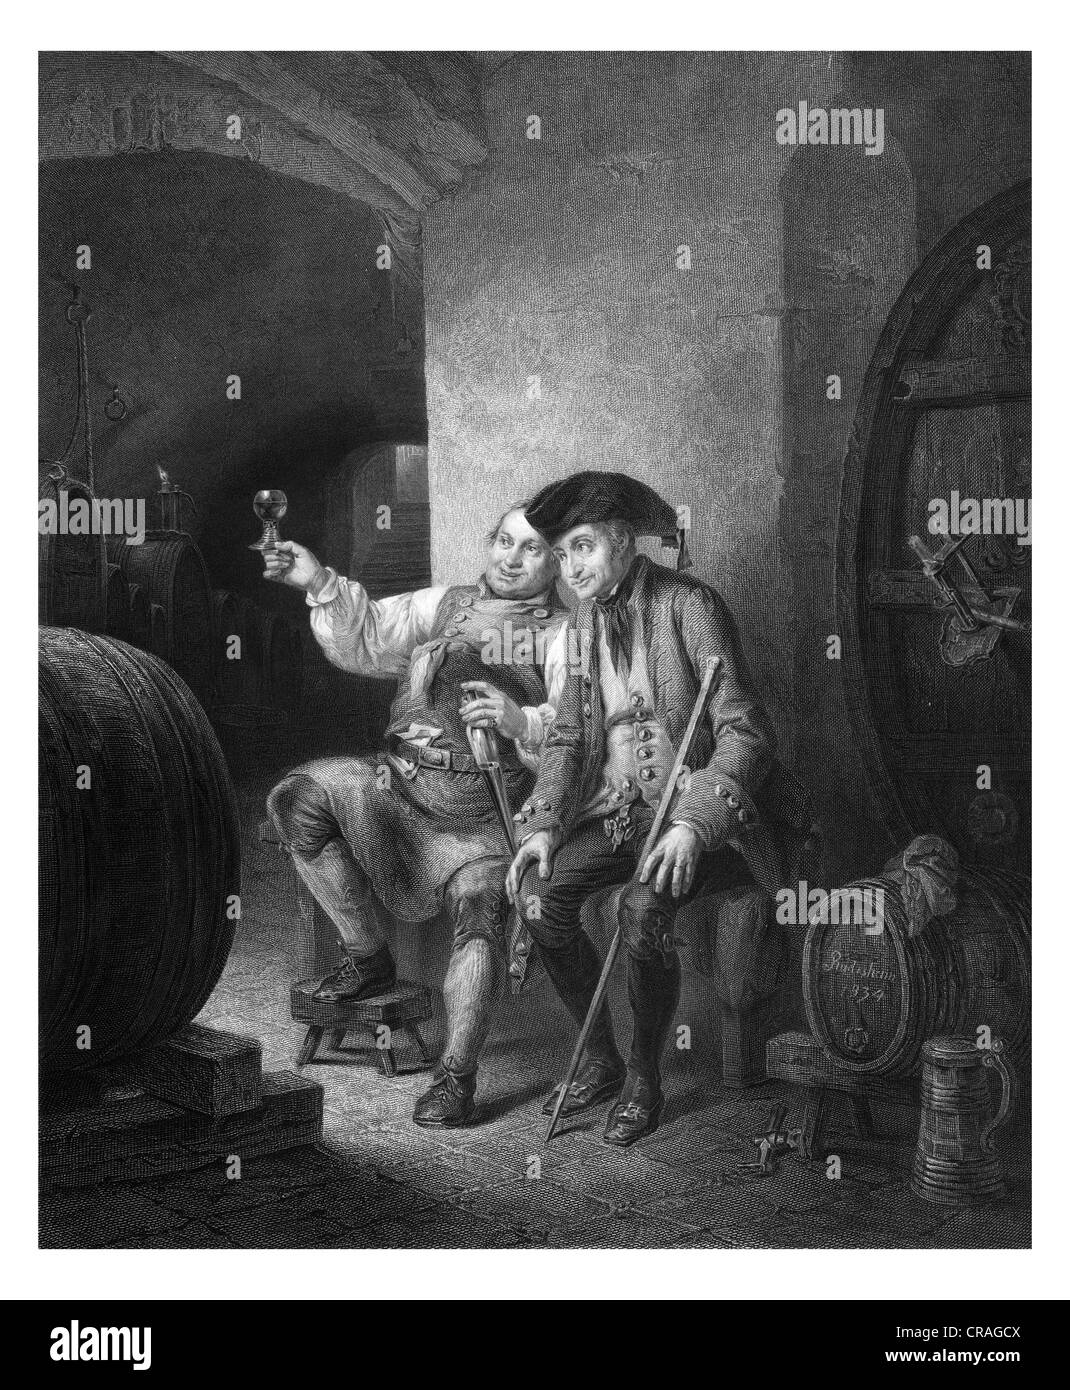 Wine tasting, historical engraving from 1852 - Stock Image